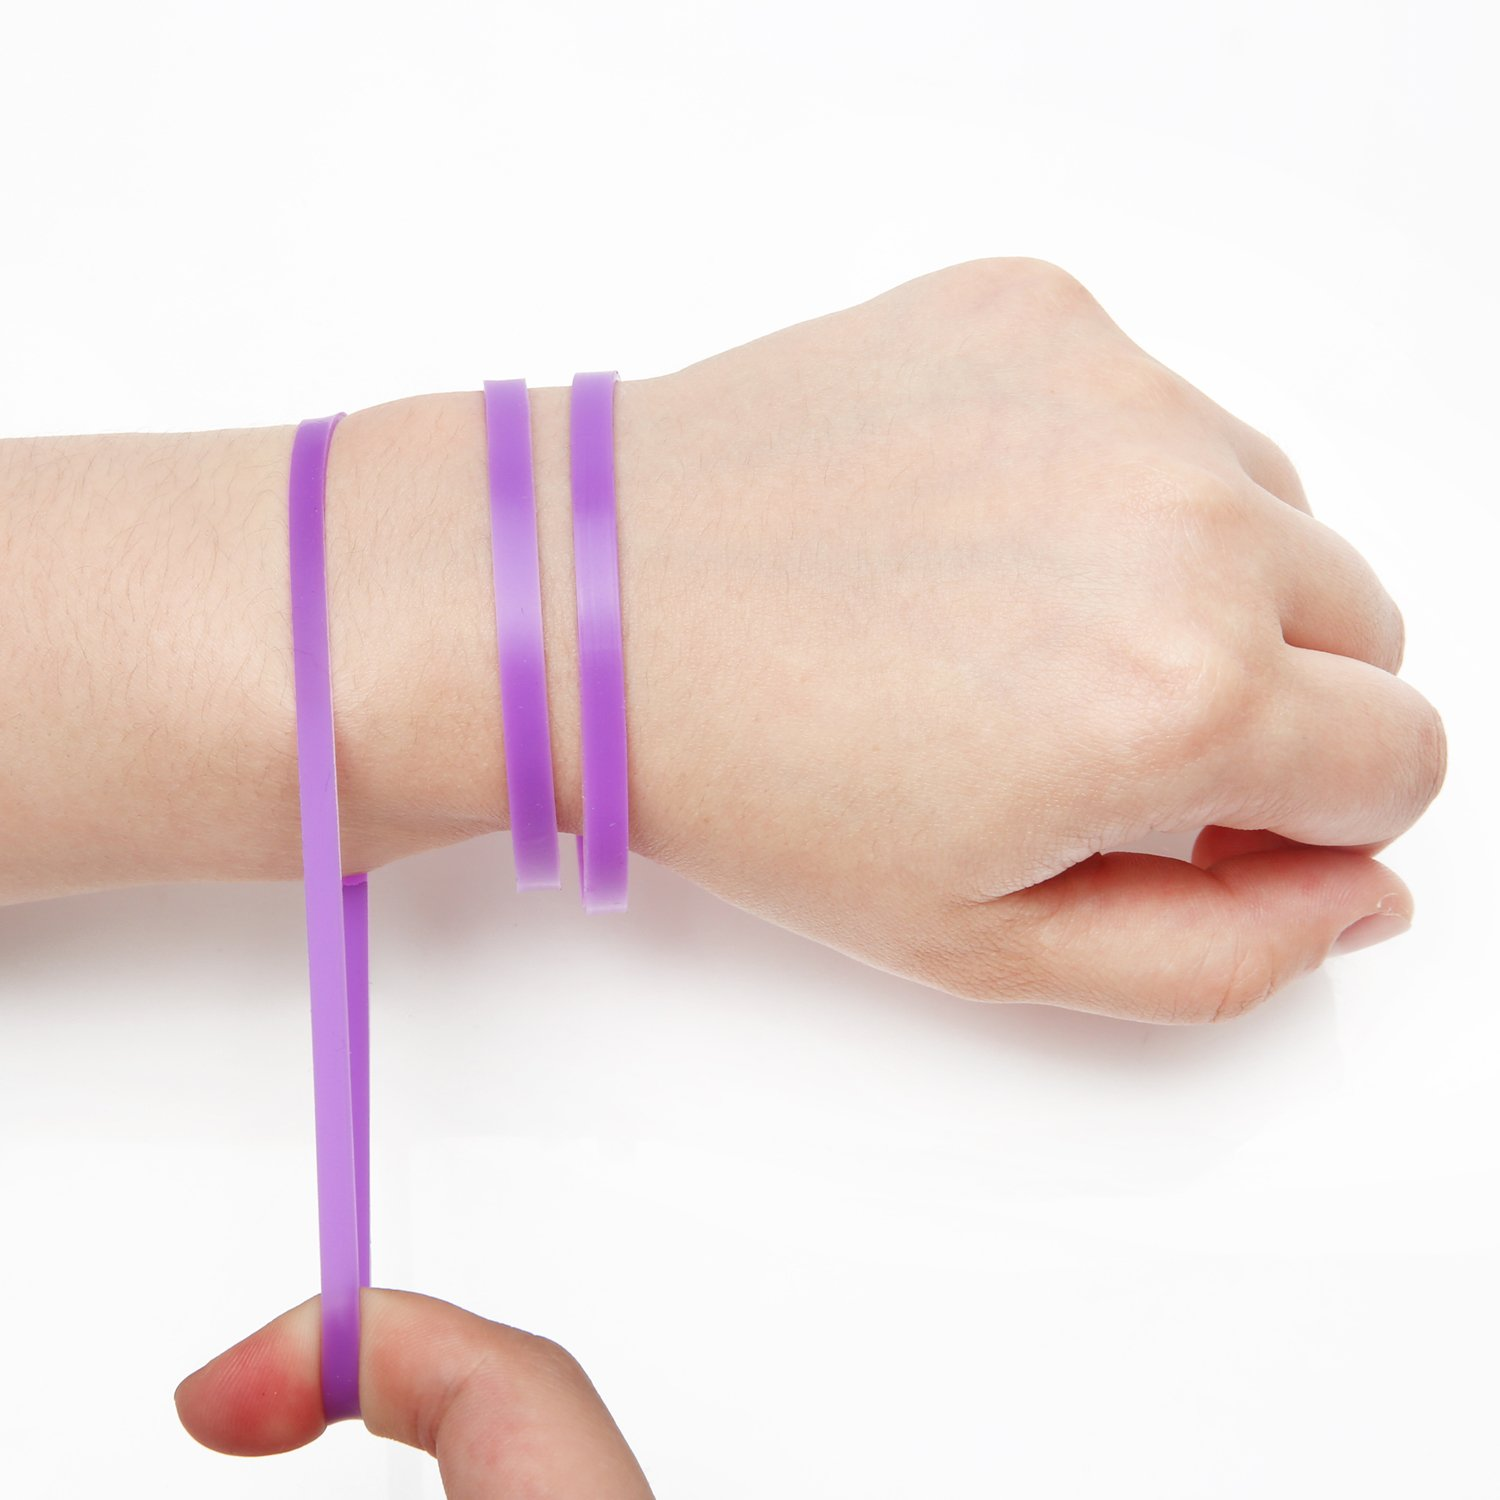 Slow is Fast Lucky Silicone Bracelet, High Elastic Silicone, Easy to Pull and Get Reminding of Purpose, Happy, Positive, Solid Plain Colors Soft Rubber Elastic Bangle Wristbands Adult Fashion Party